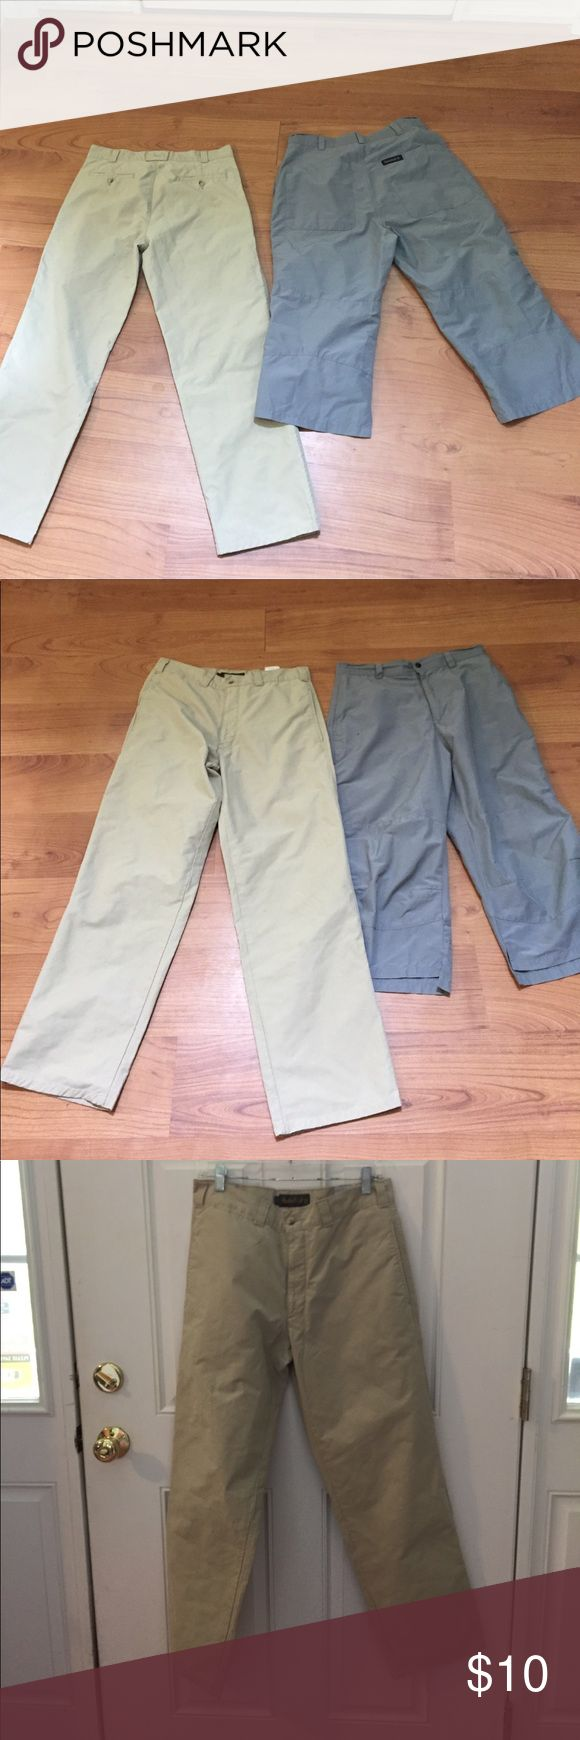 "Timberlands bundle of 2 men's pants 31"" khaki gray Bundle of two pairs of men's pants both by timberland both 31"" waist one is khaki and in good condition one is gray and long shorts - no flaws on beige a small mark  on leg on the gray ones sold as a set selling cheap! Timberland Pants Chinos & Khakis"